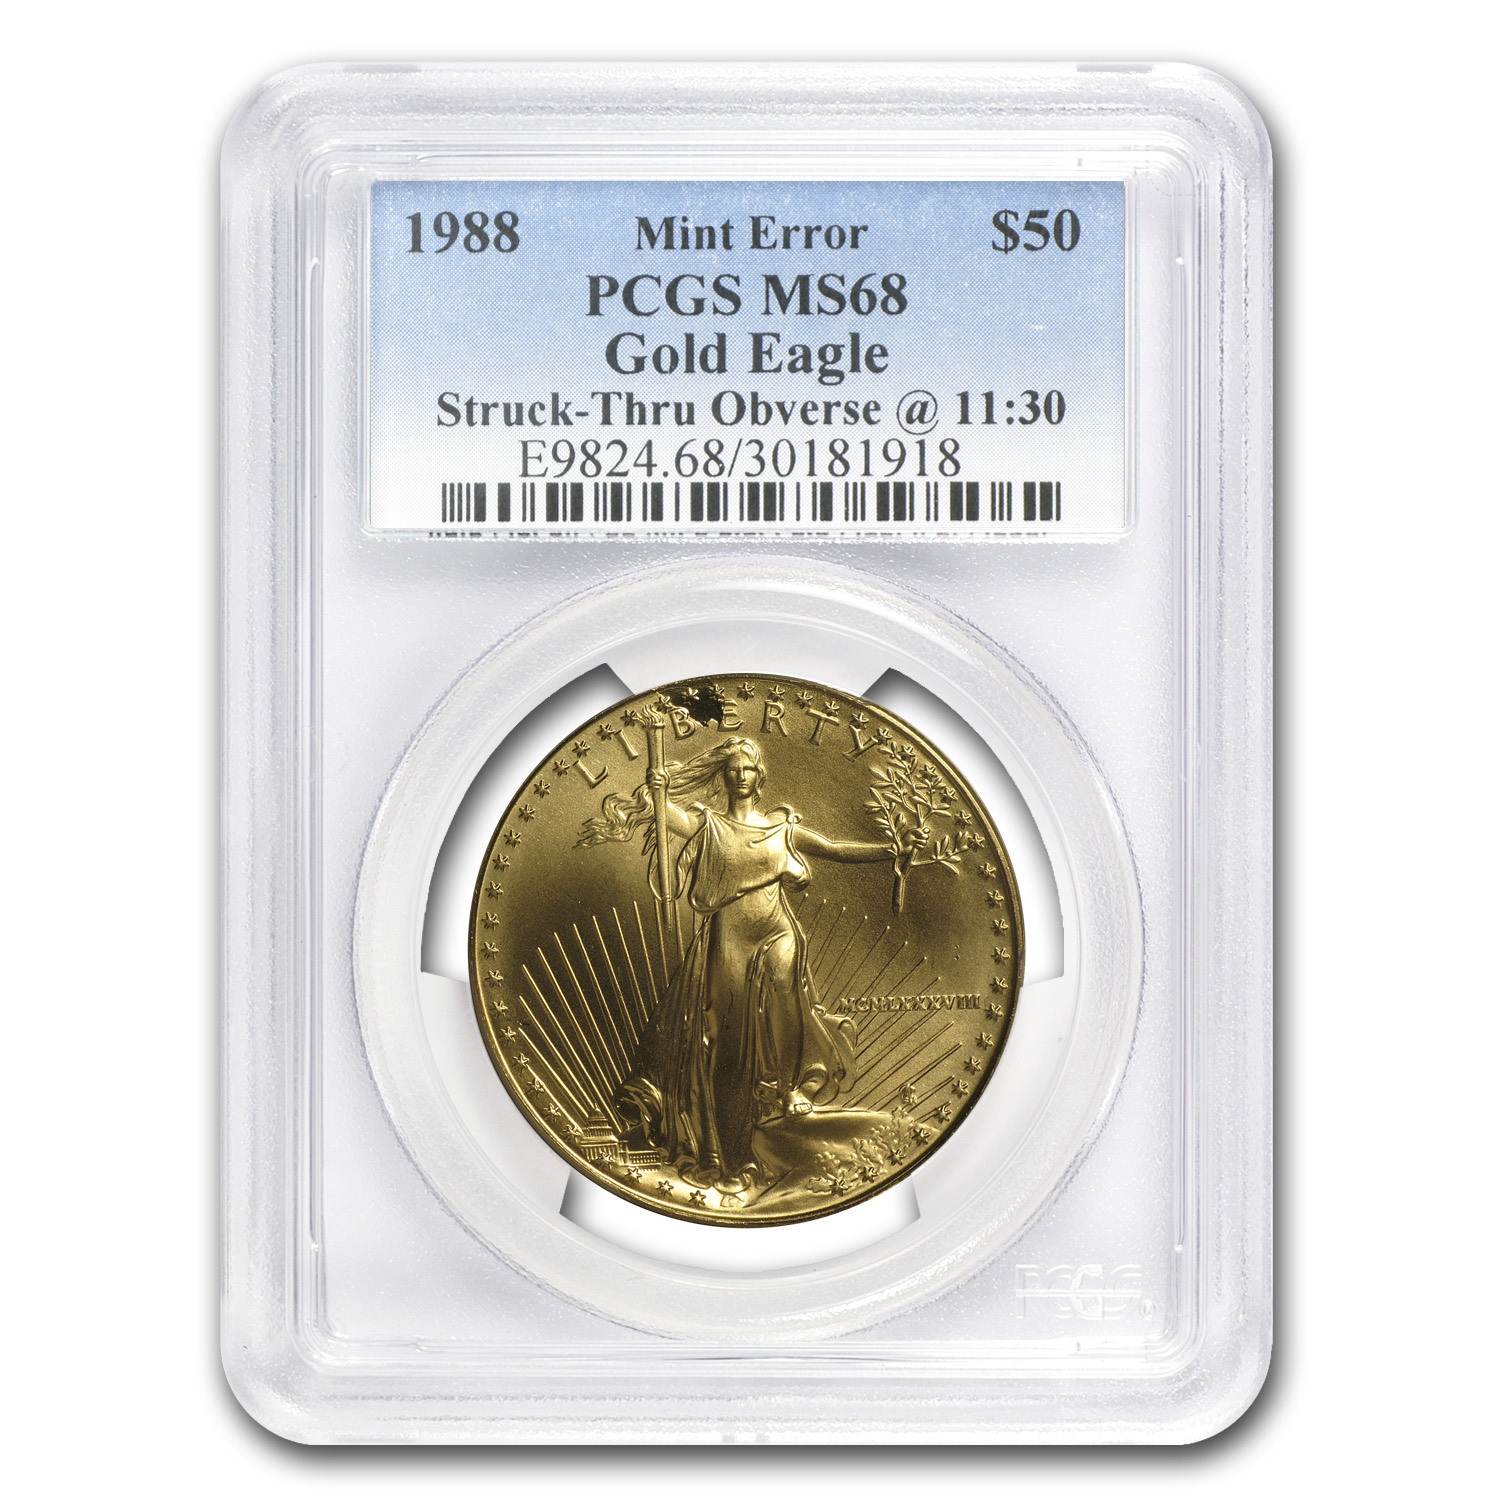 1988 1 oz Gold Eagle Mint Error MS-68 PCGS (Obv Struck Thru)